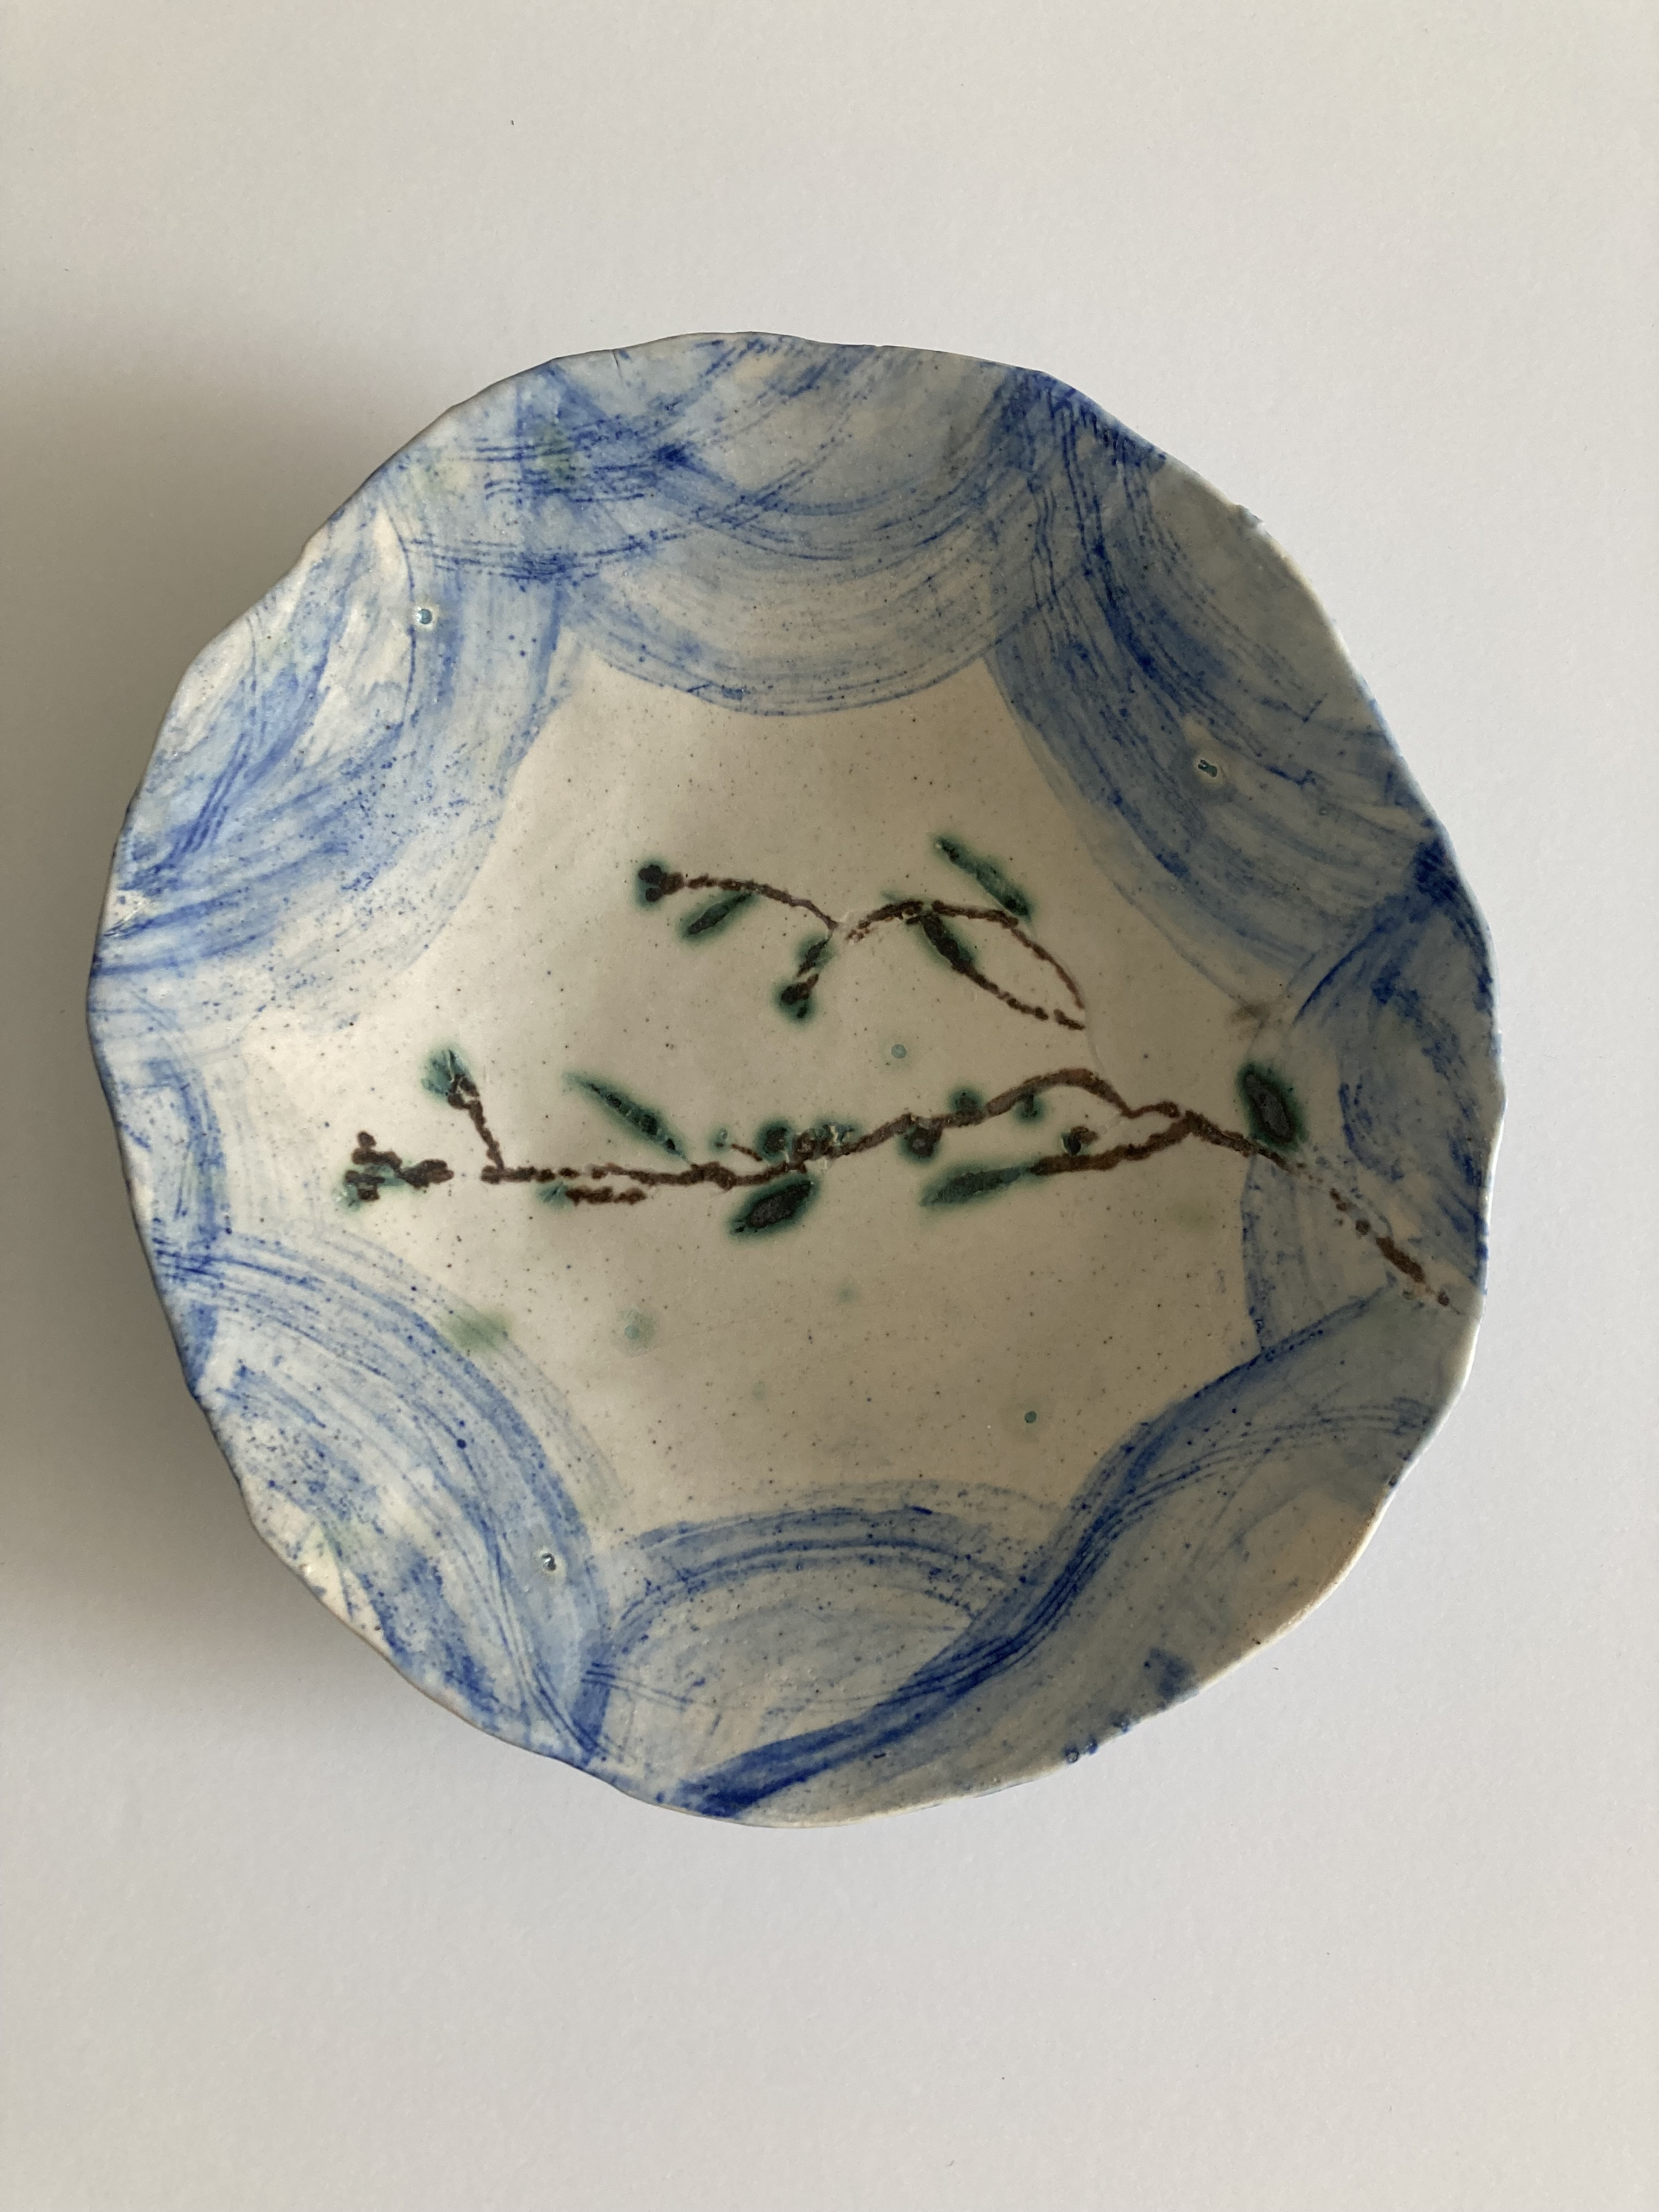 'Seascape' Bowl by Claire Finlay